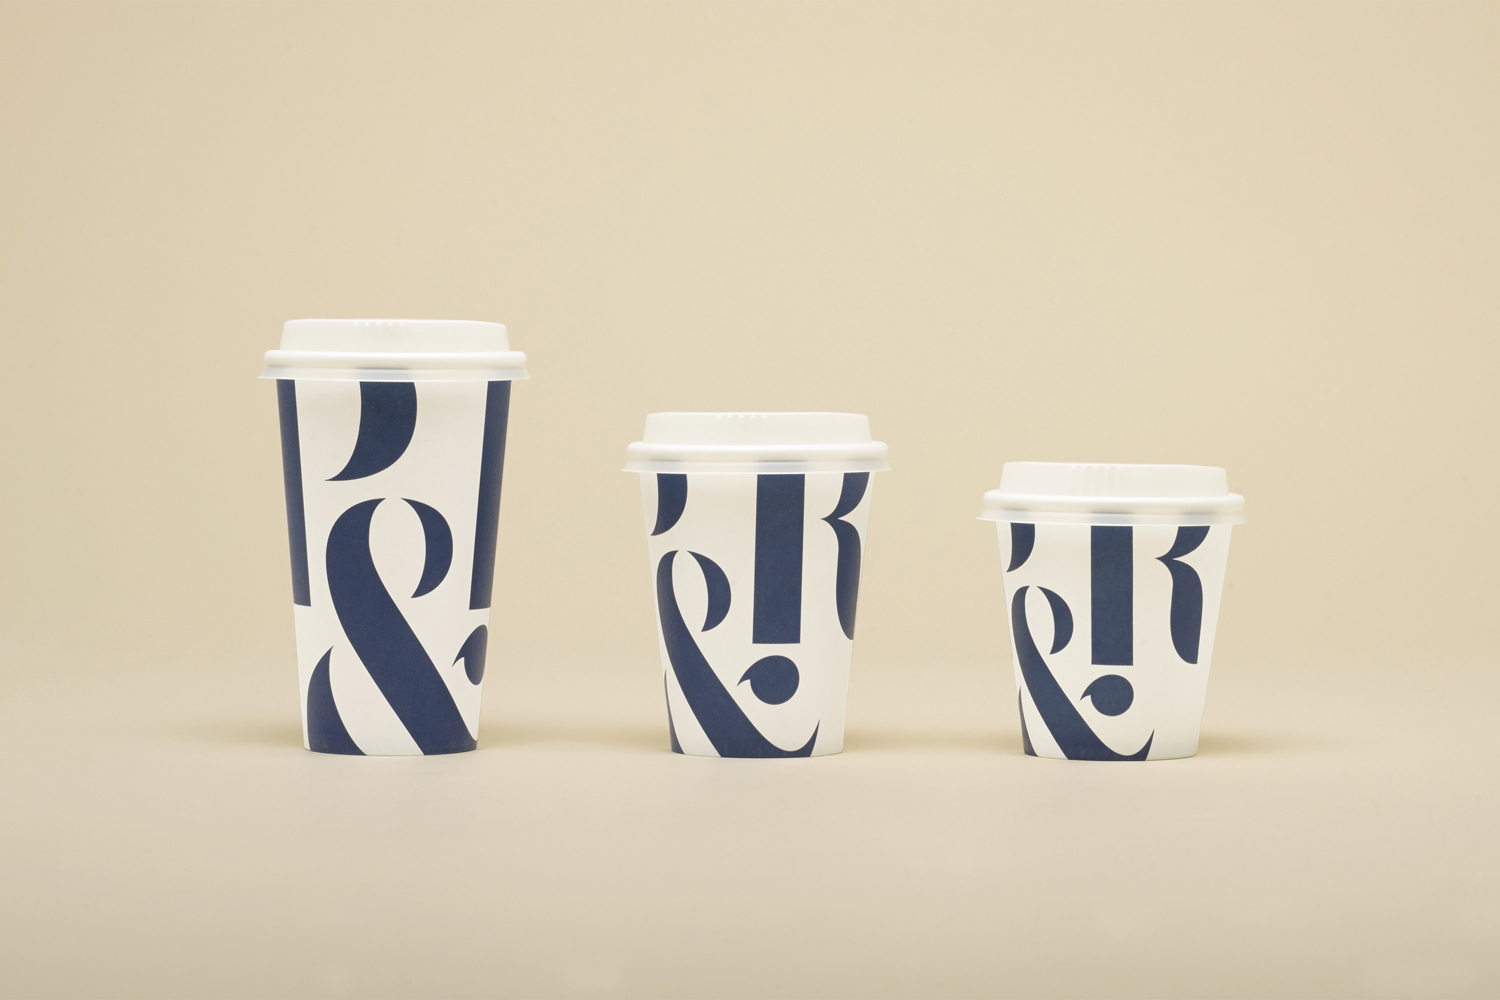 Coffee cup packaging design for Sydney based roaster Pablo & Rusty's designed by Manual